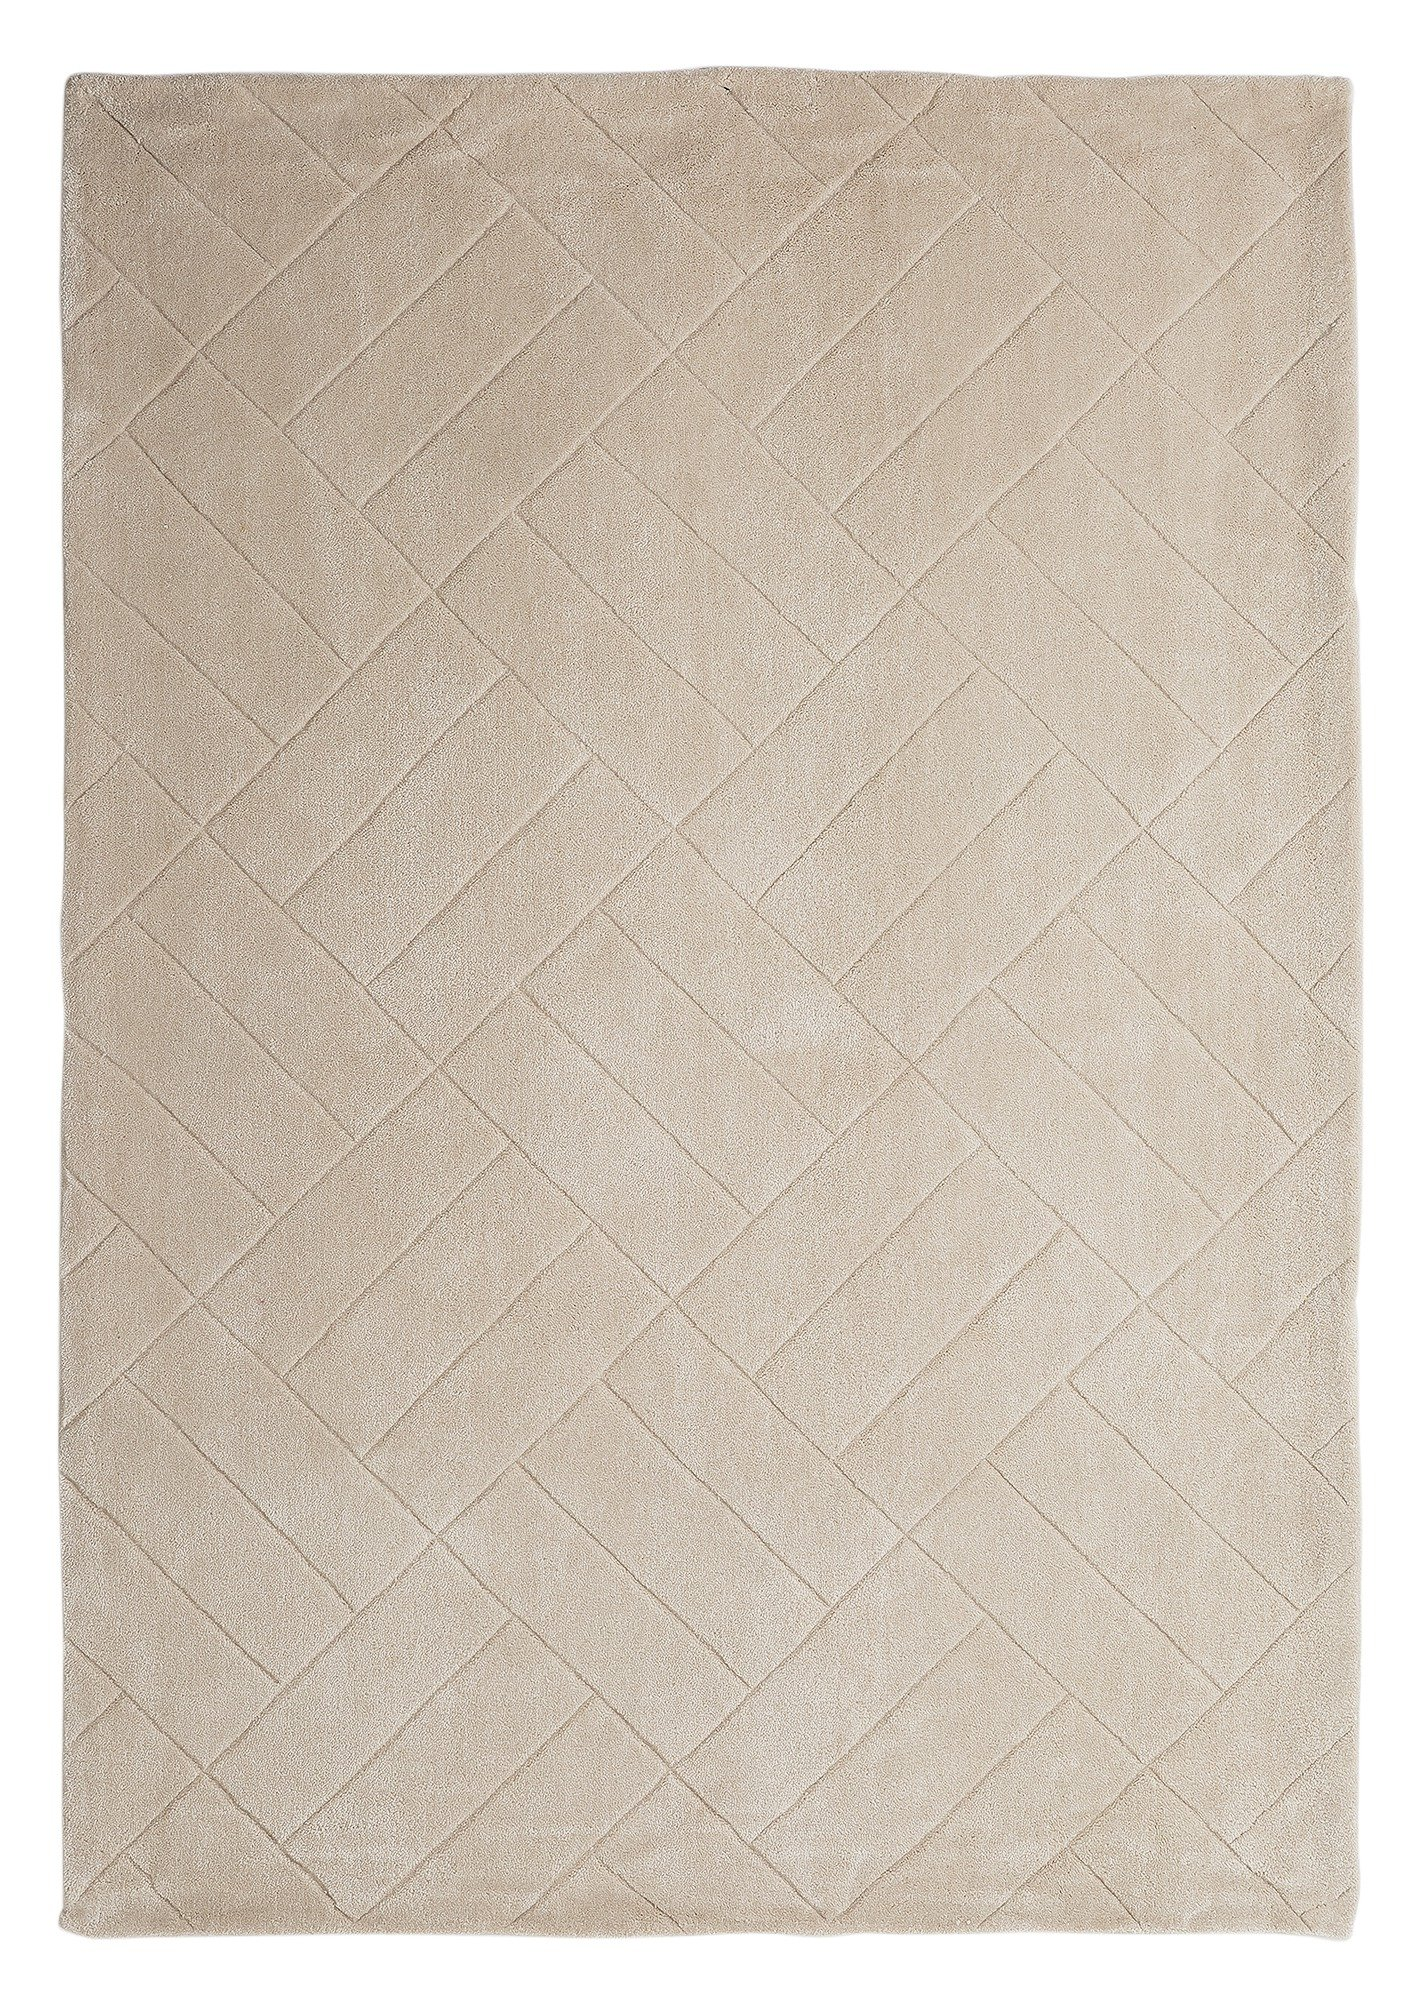 Collection Parker Rug - 160x230cm - Cream